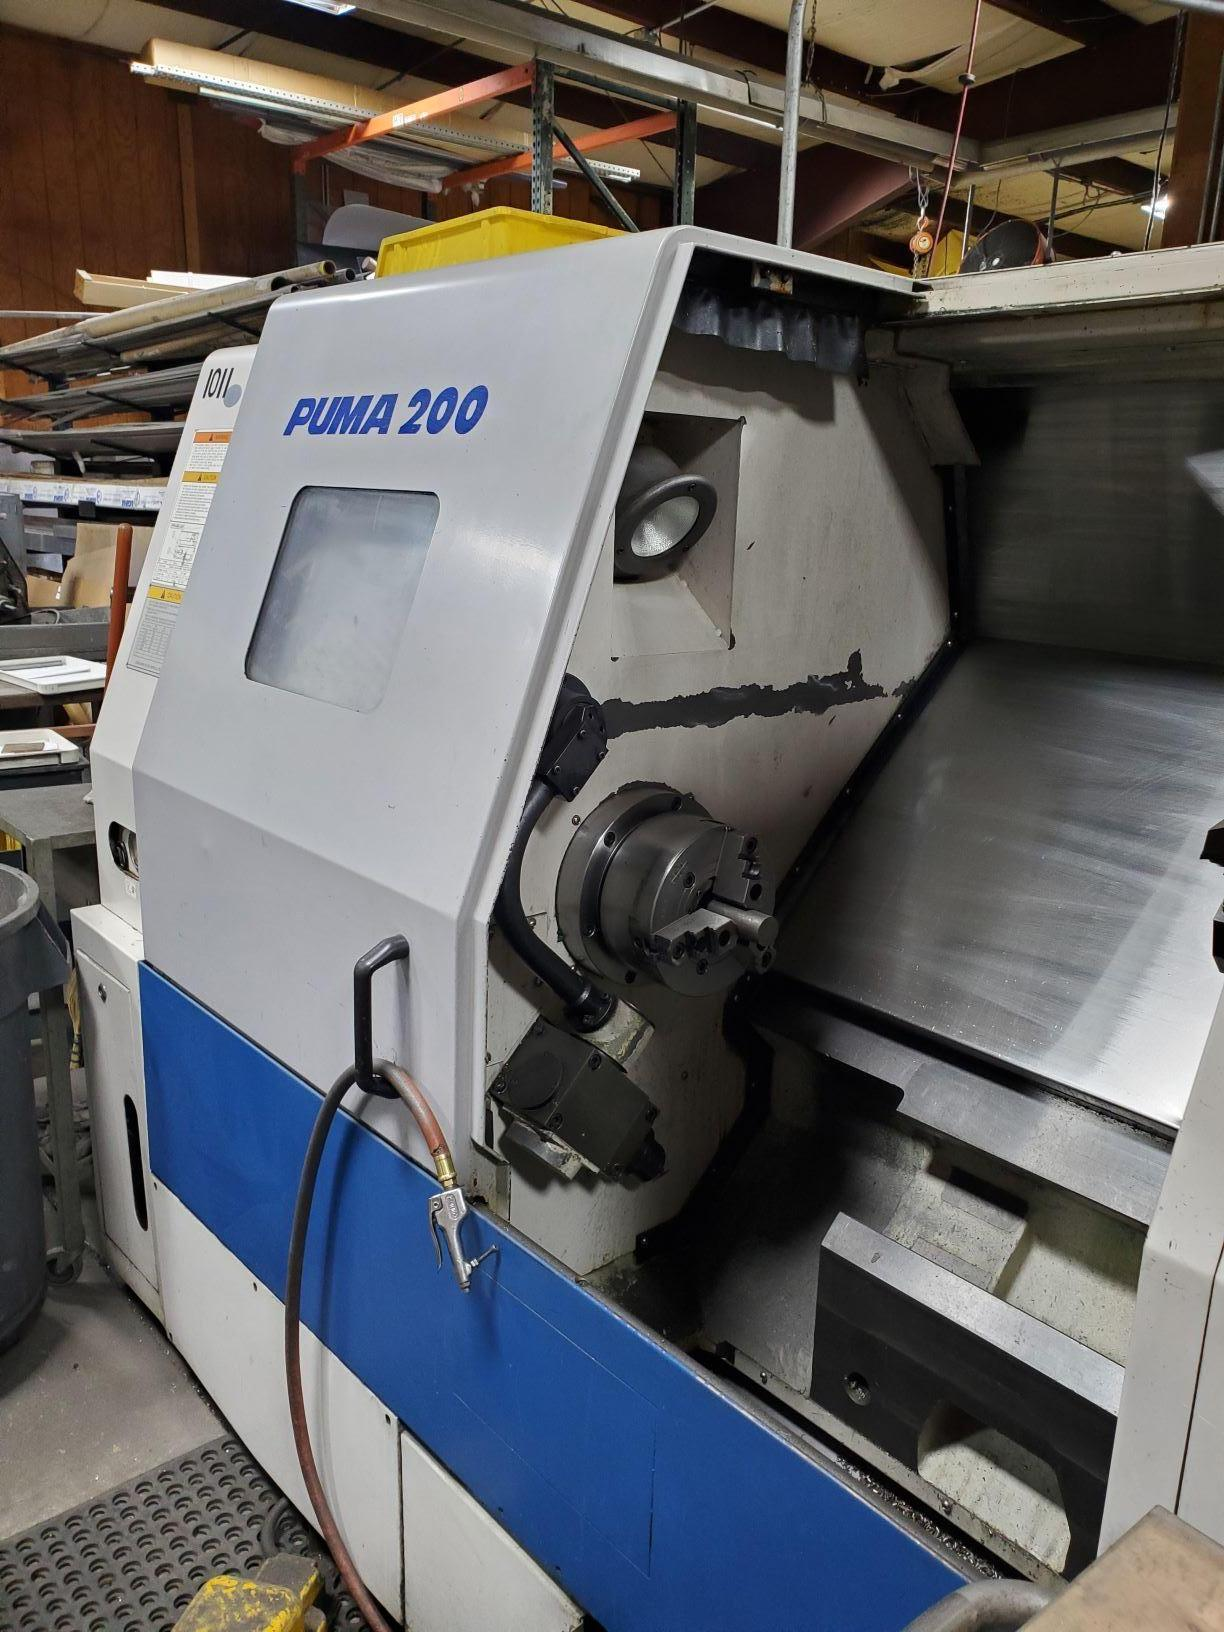 DAEWOO PUMADaewoo Puma 200LC CNC Lathe, Fanuc 18T, Tailstock, Collet Pad System, Chip Conveyor,